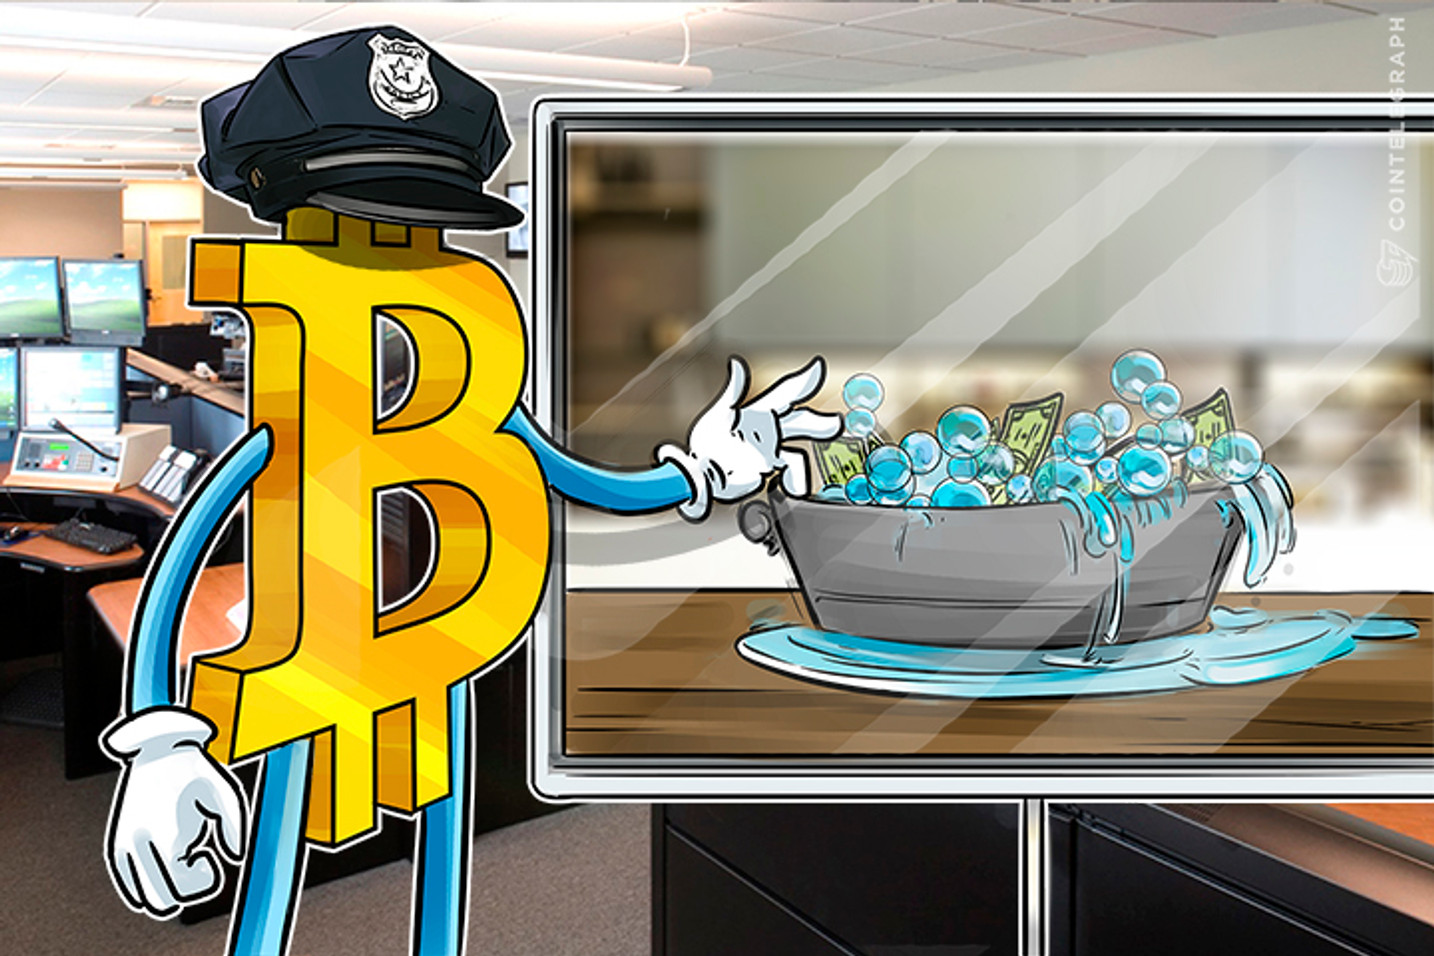 Bitcoin Gives Window into Rampant Money Laundering